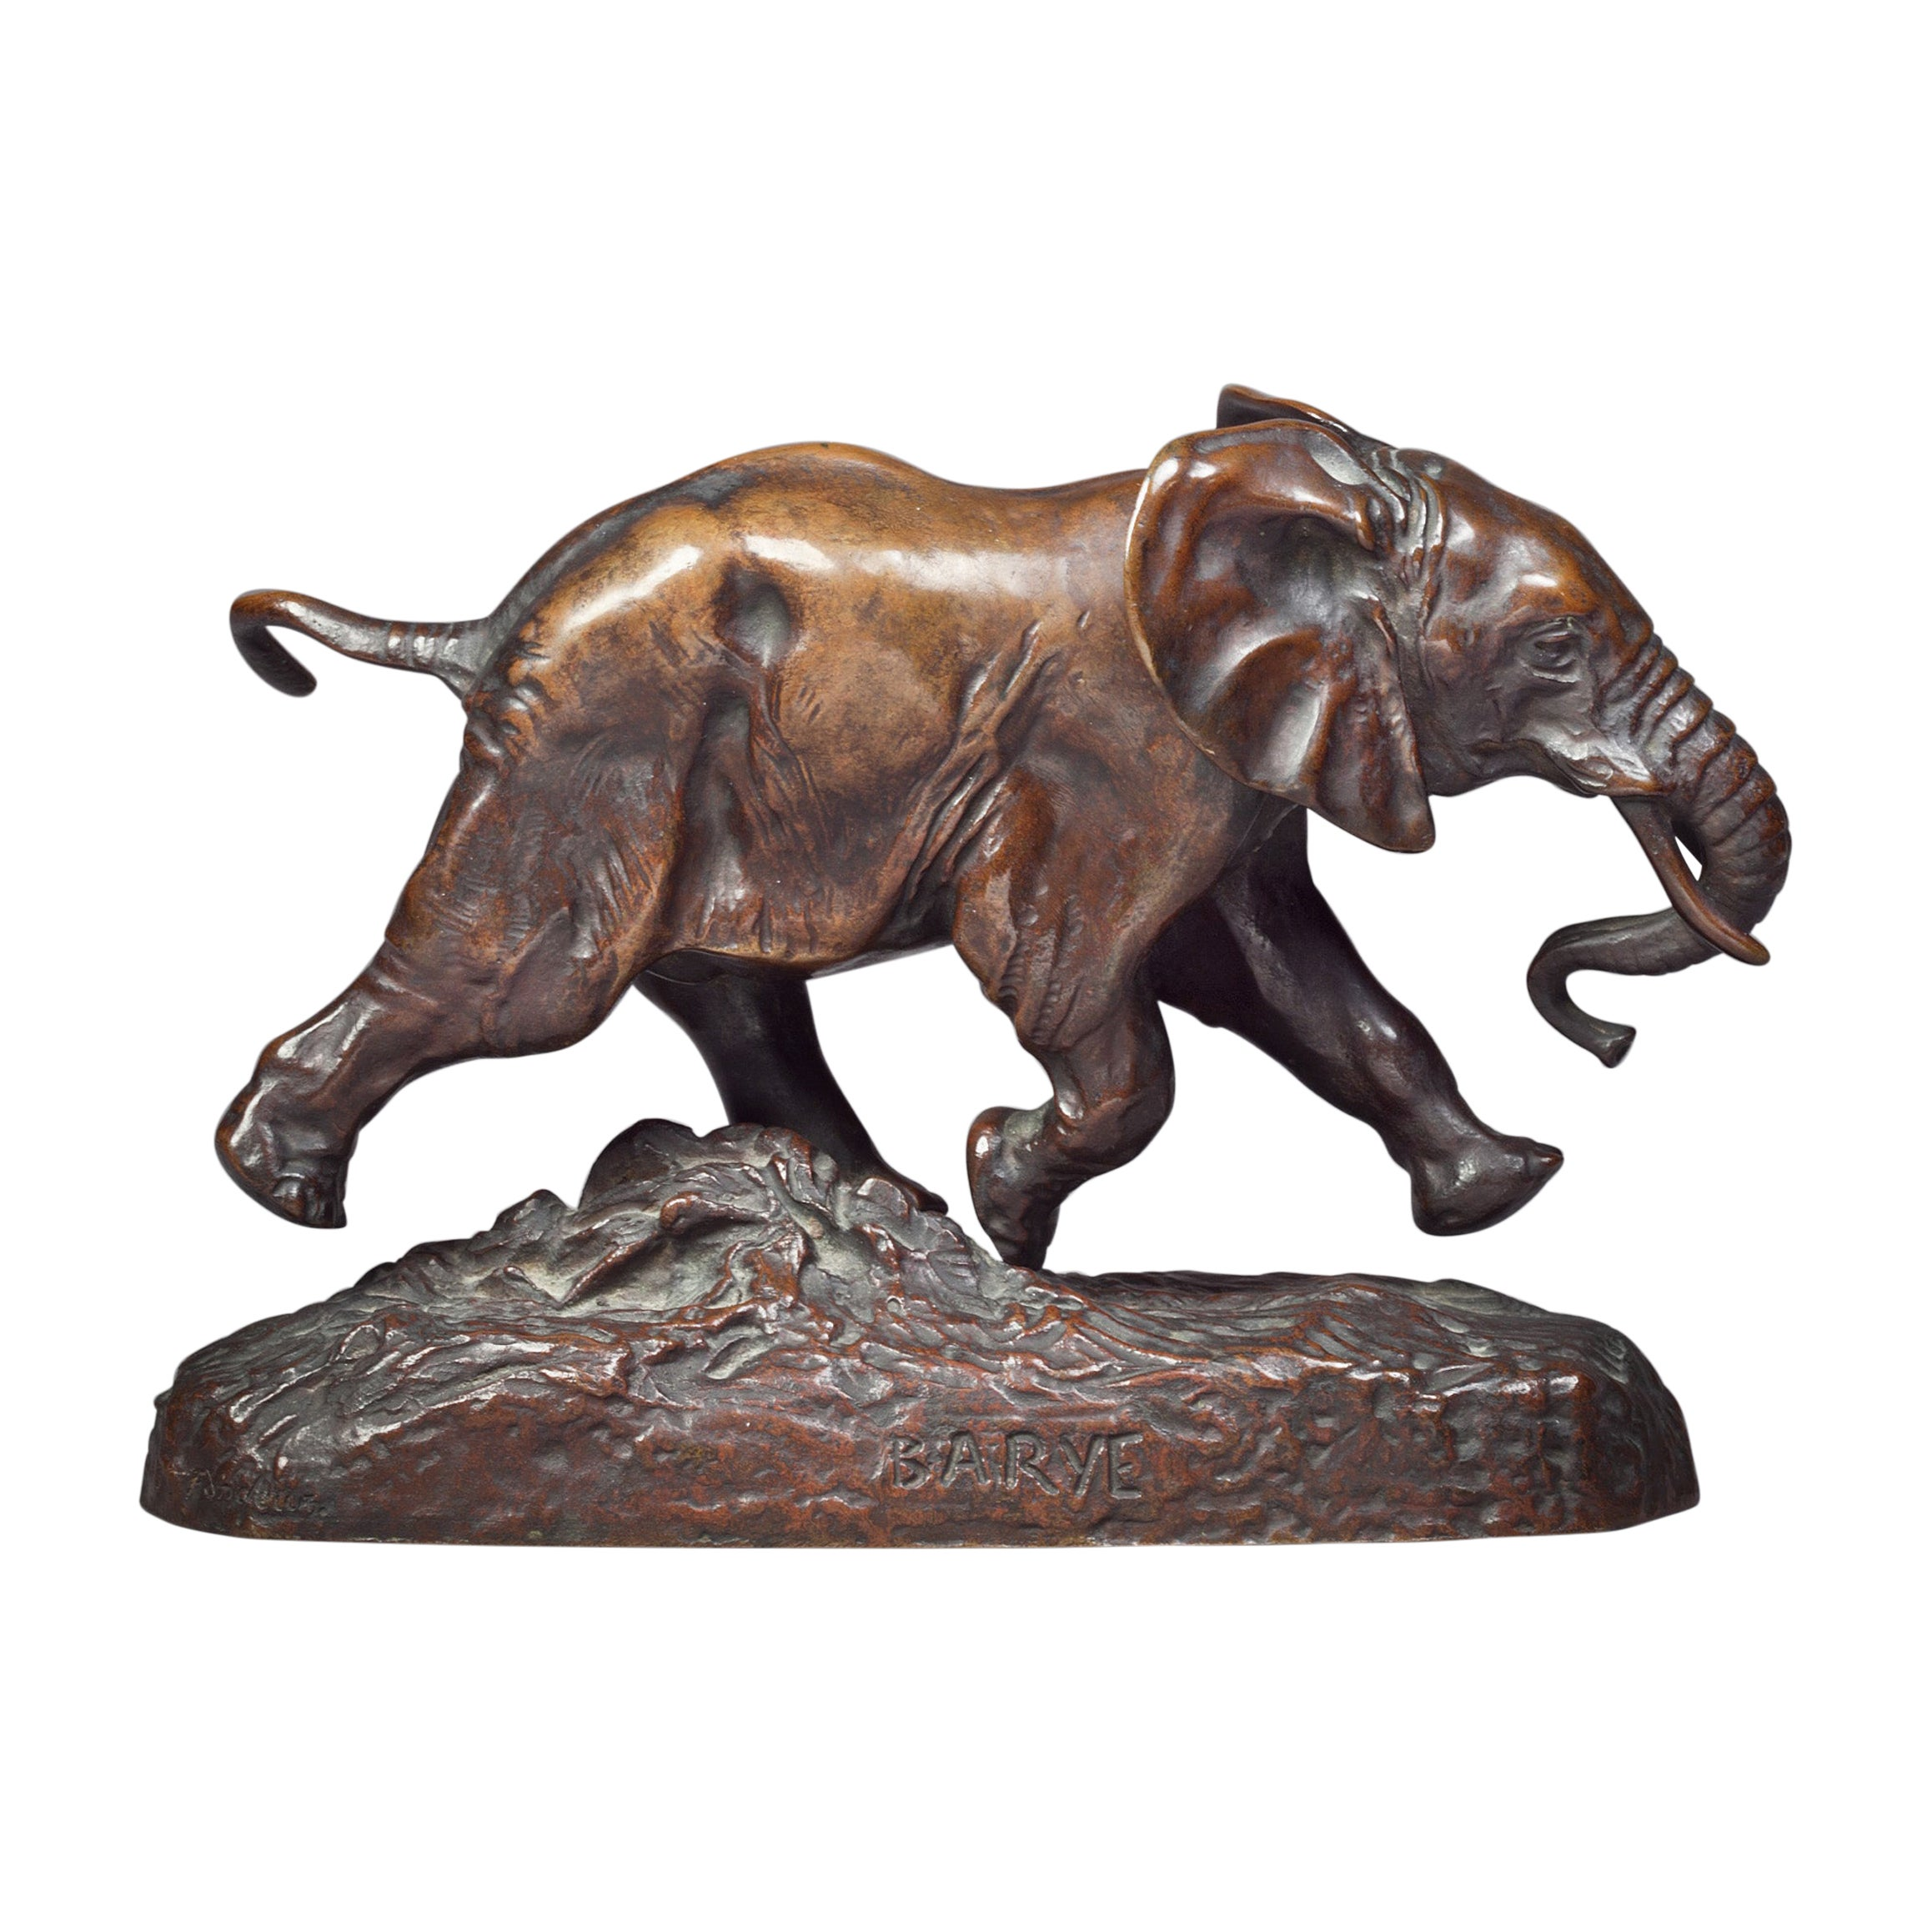 French Bronze Figure of an Elephant by Antoine Louis Barye